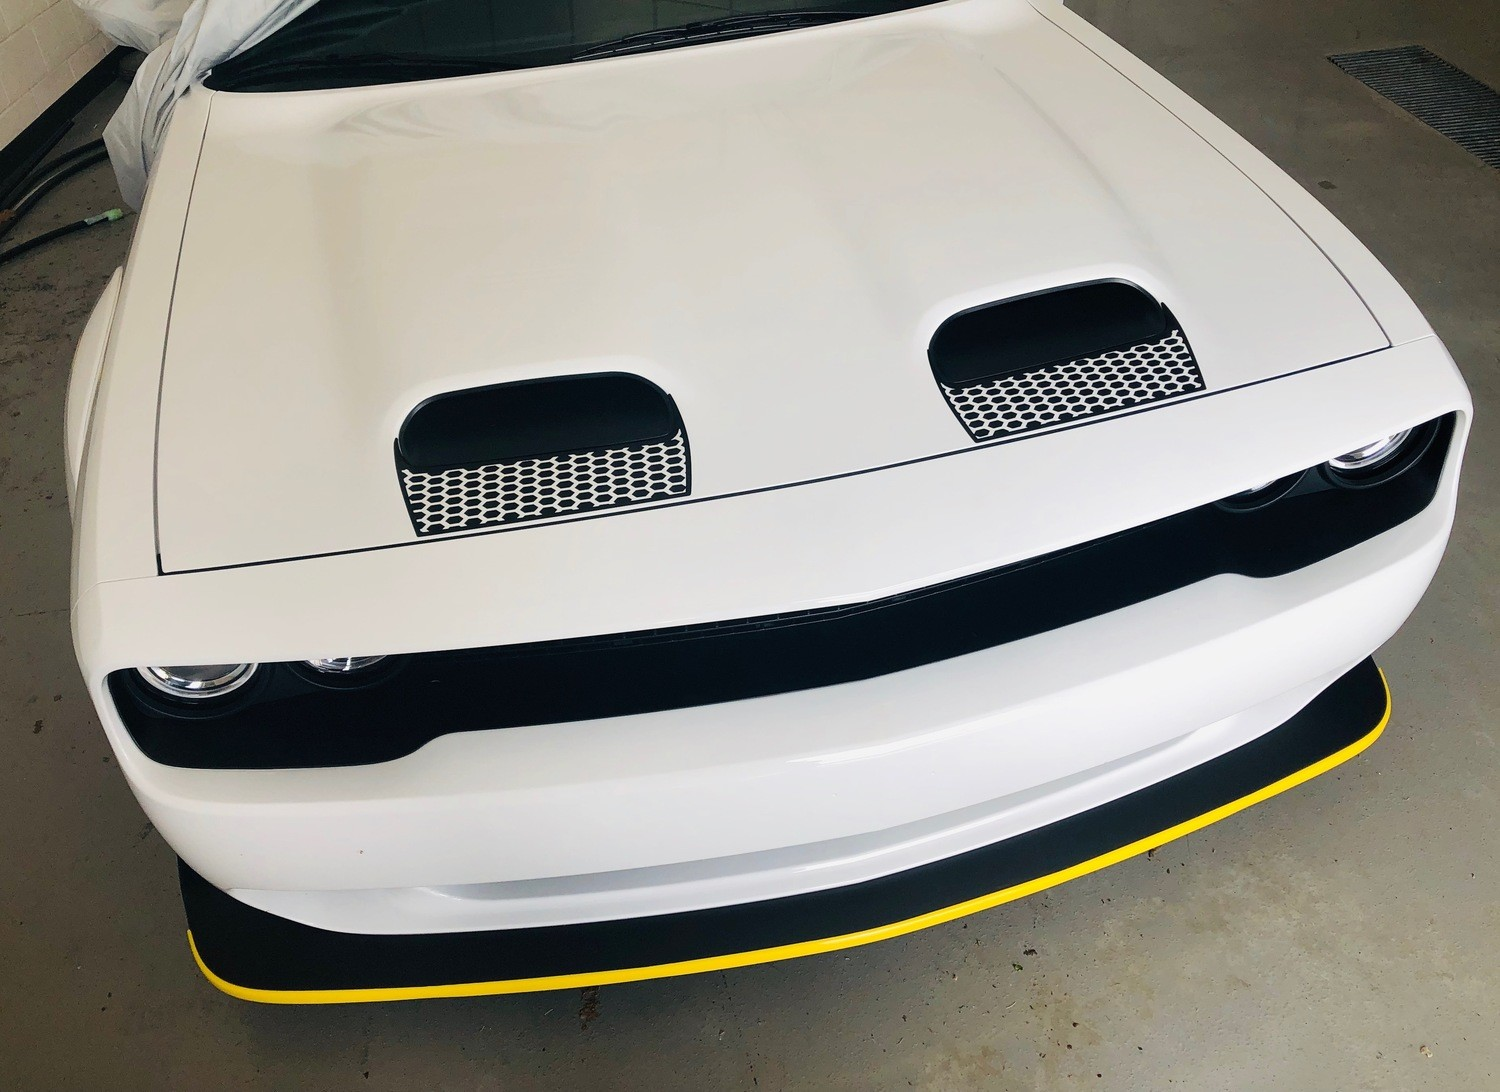 2019 - Up Dodge Challenger SRT Hellcat Dual Scoop Hood Scoop Insert Blackouts